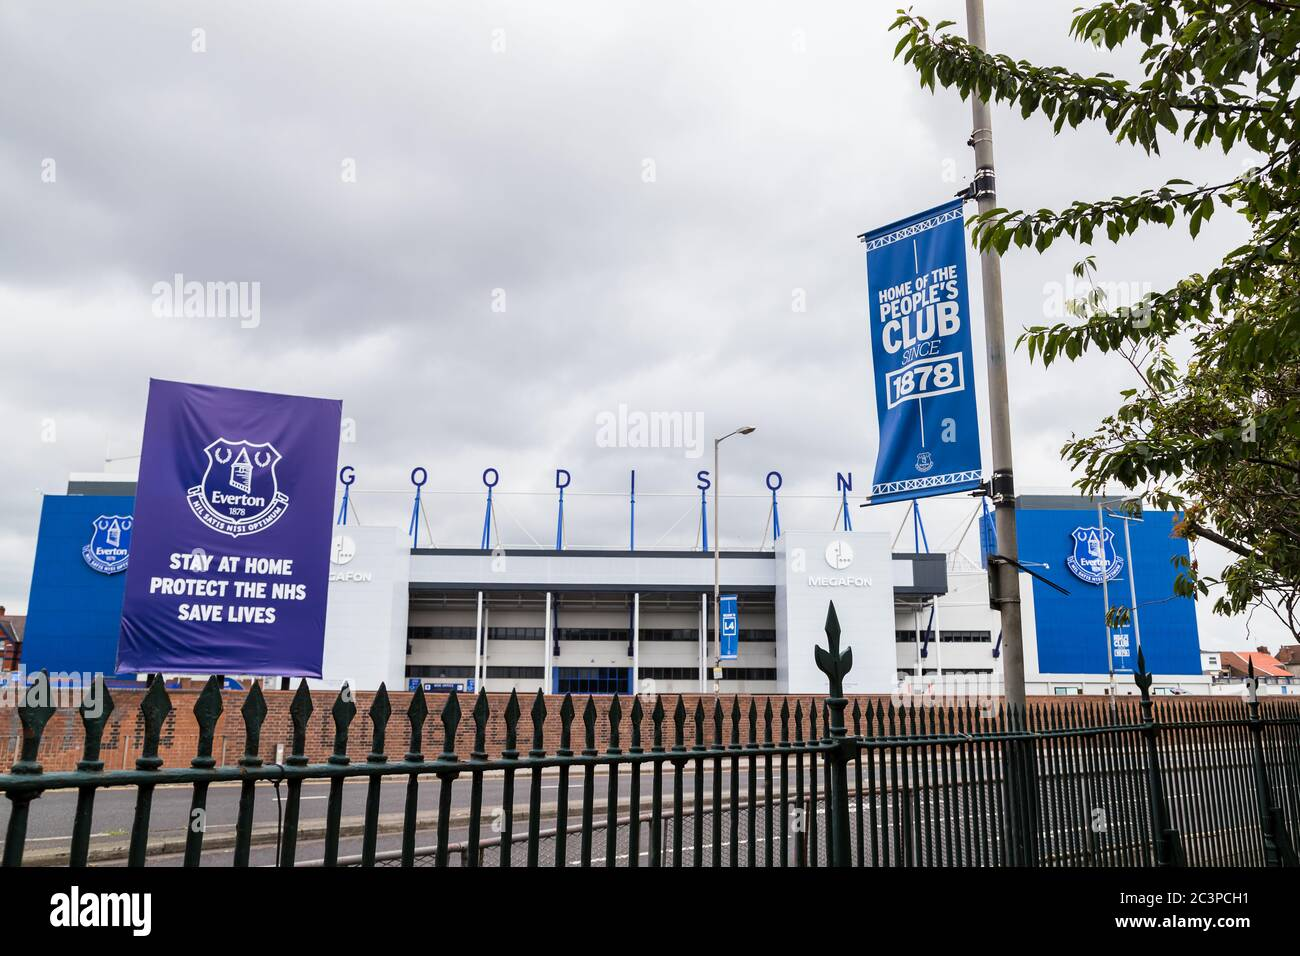 Goodison Park stadium (home of Everton FC) seen in June 2020 from the edge of Stanley Park. Stock Photo